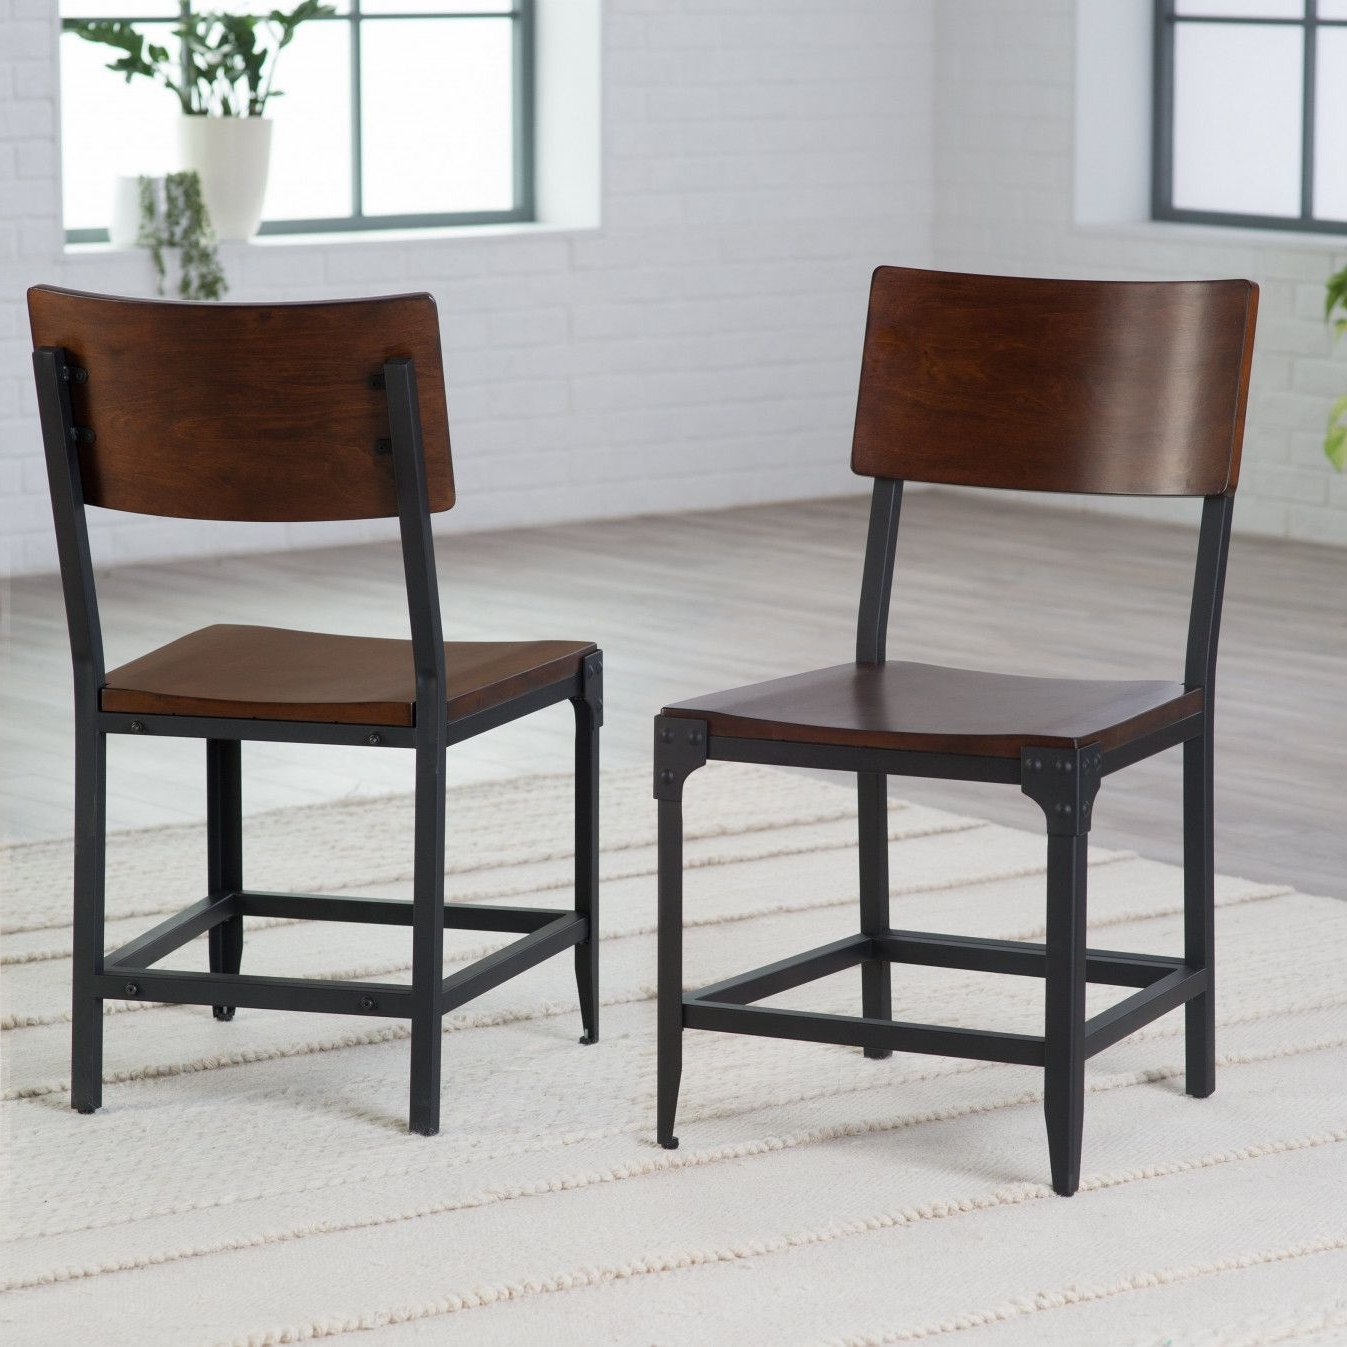 Trendy Magnolia Home Contour Milk Crate Side Chairs For Pinfurniture For Home Decor On Rustic Furniture (View 20 of 20)